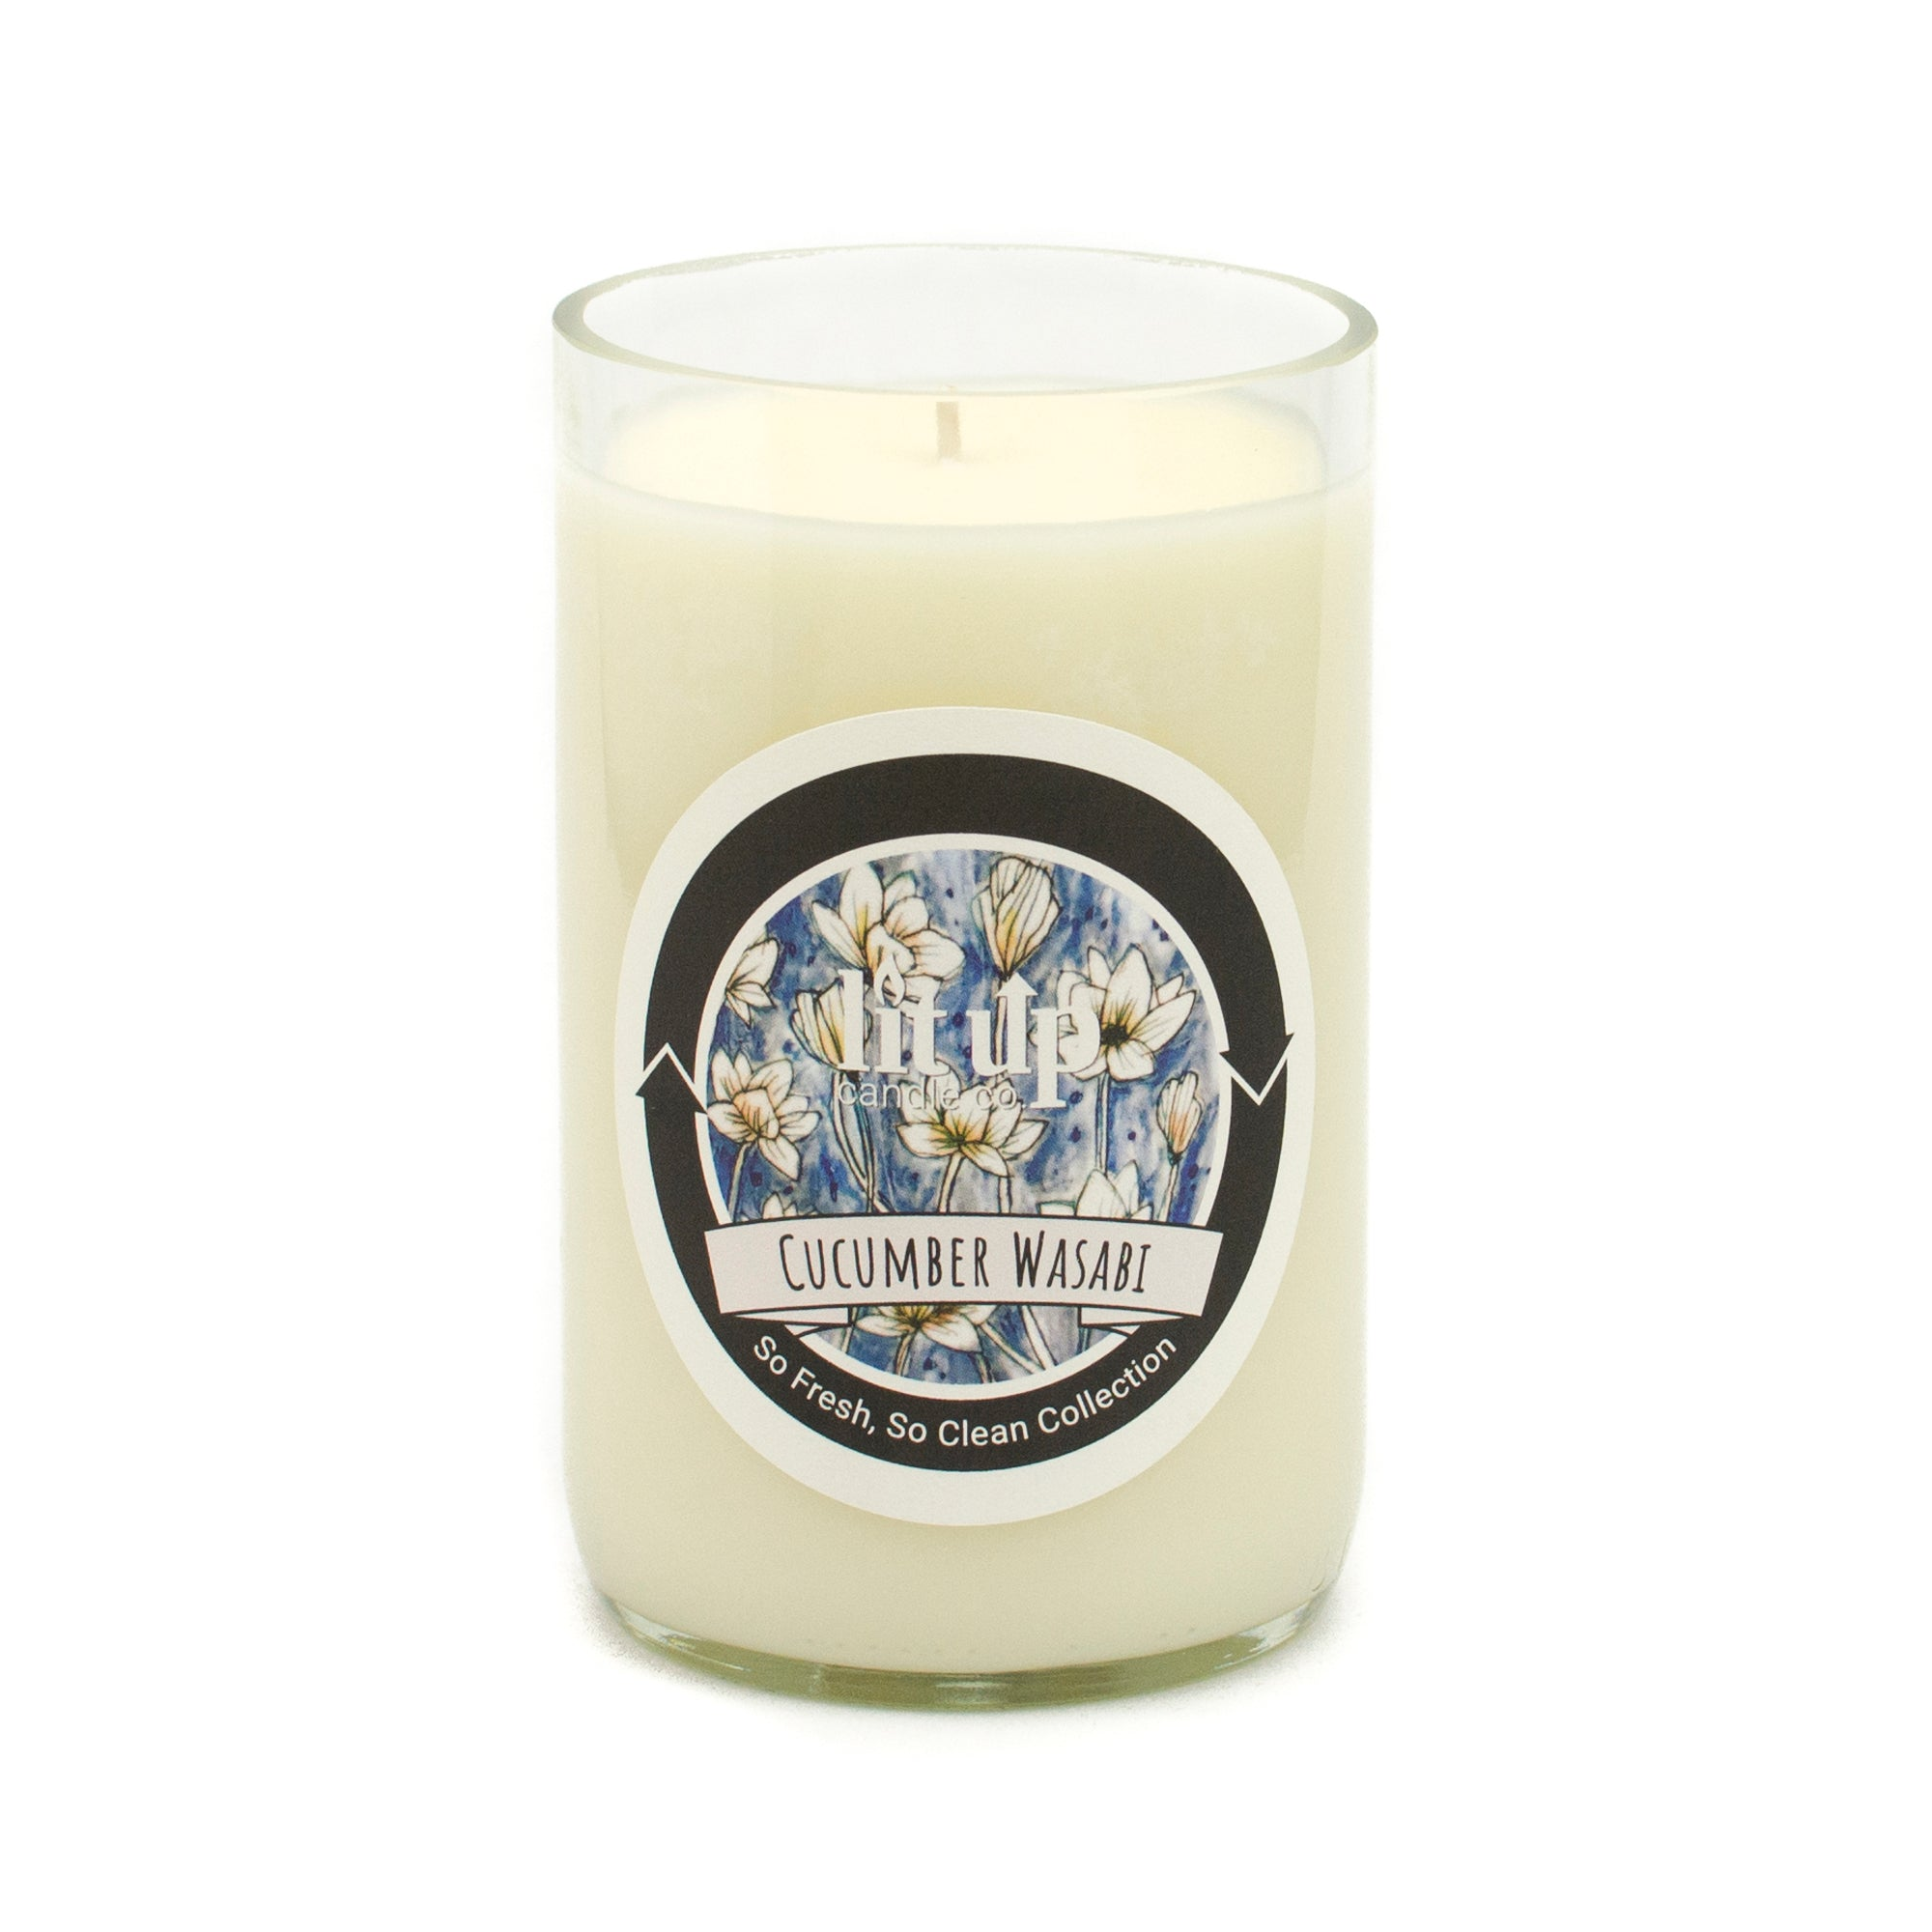 Cucumber Wasabi 12 oz. Soy Candle